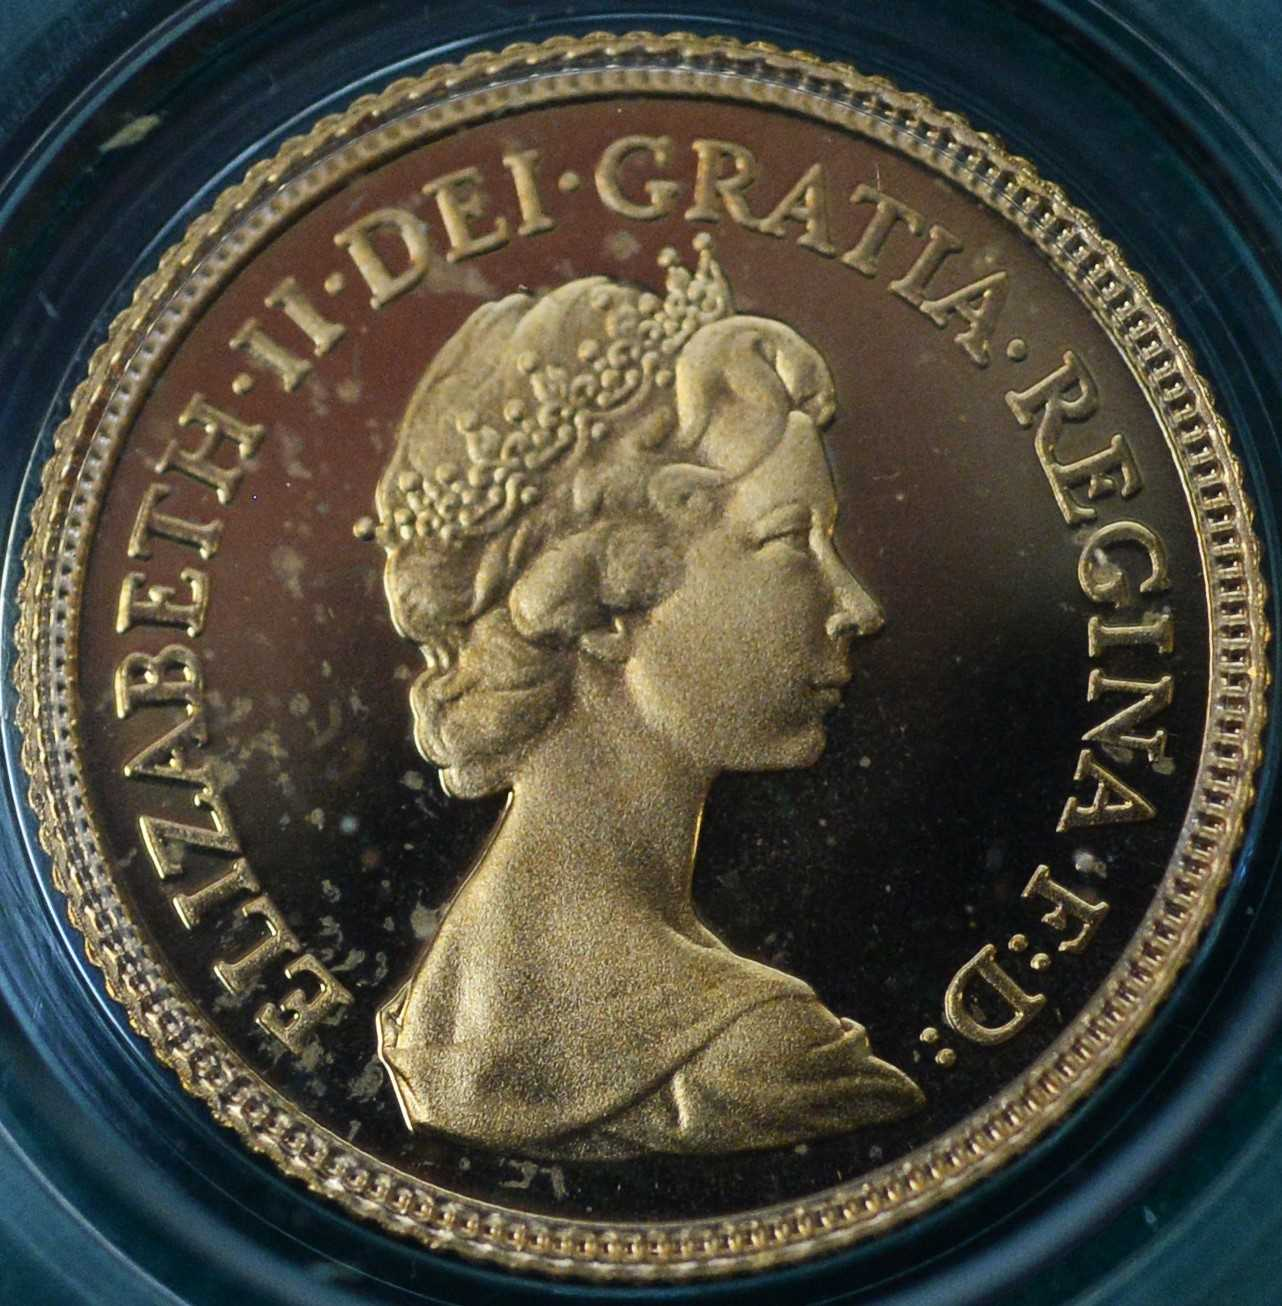 1980 four coin gold proof sovereign set - Image 6 of 8